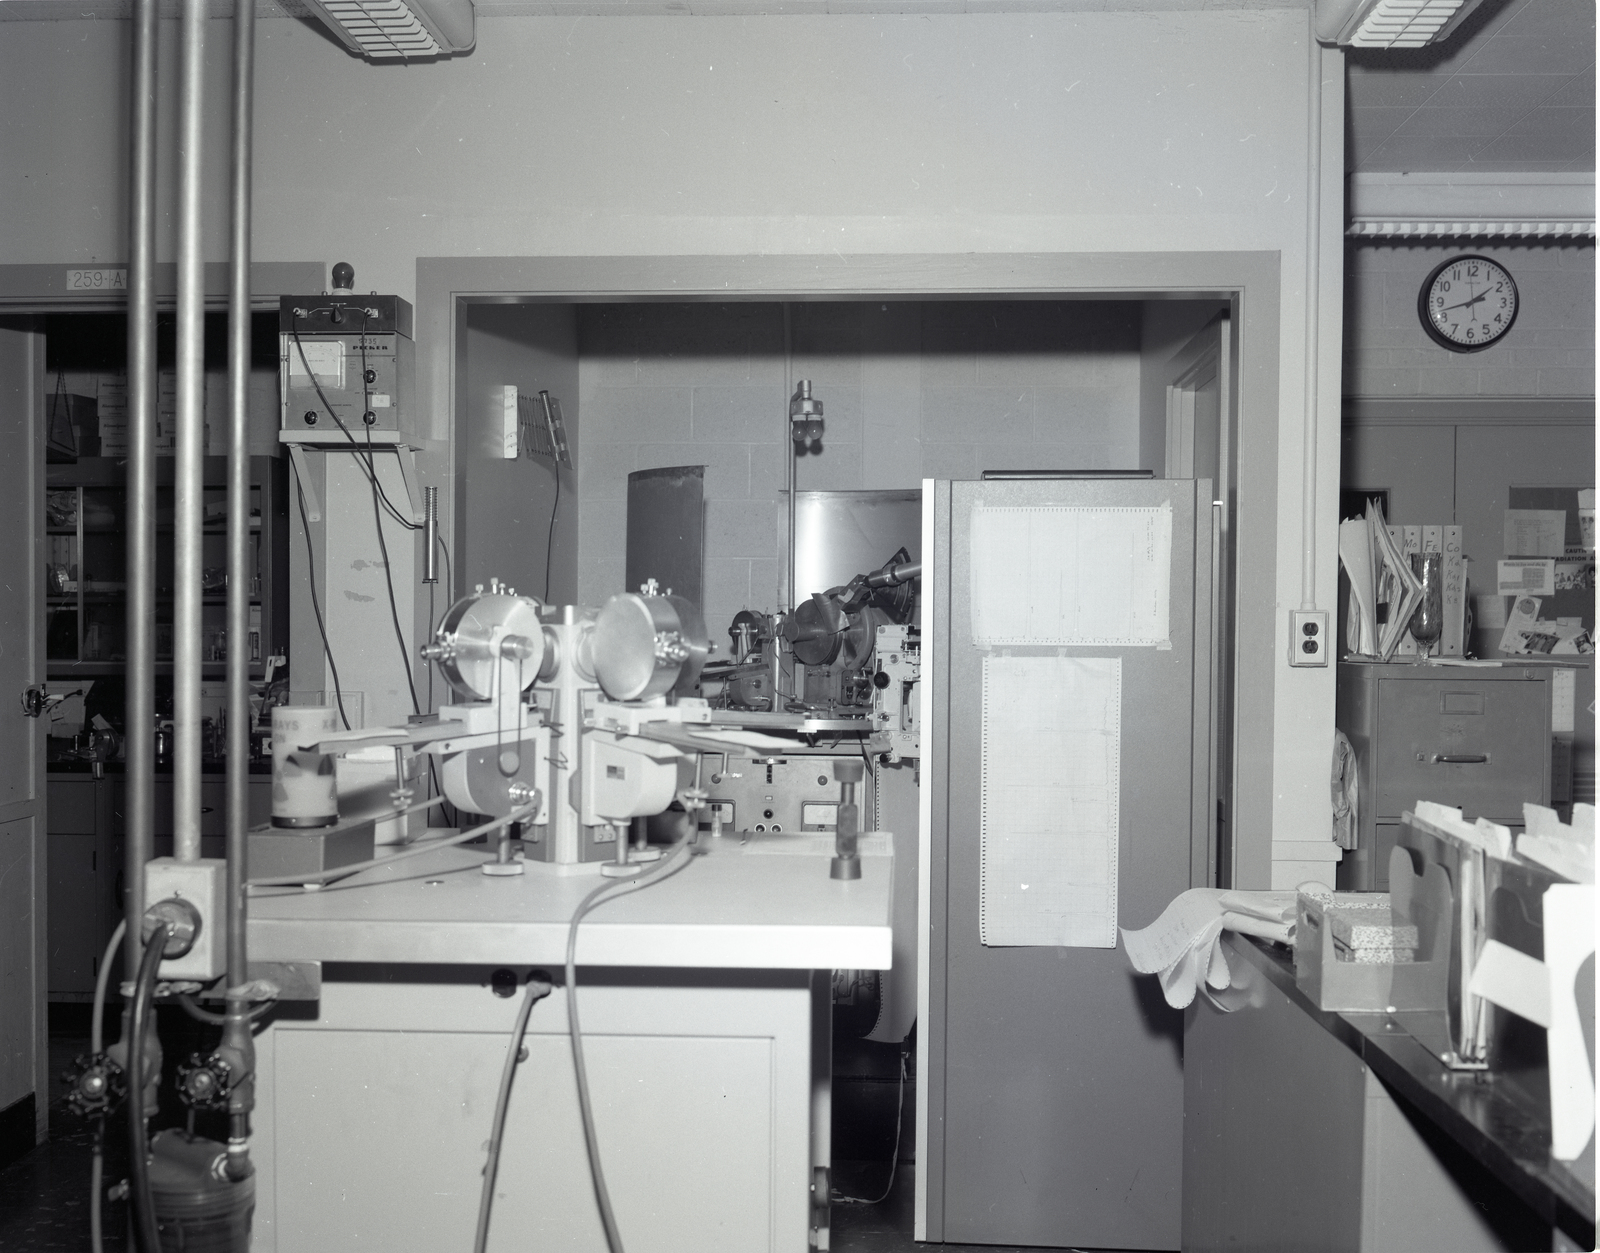 X-RAY LABORATORY - FURNACE ROOM - CREEP LABORATORY  IN THE MATERIALS AND STRESSES M&S BUILDING